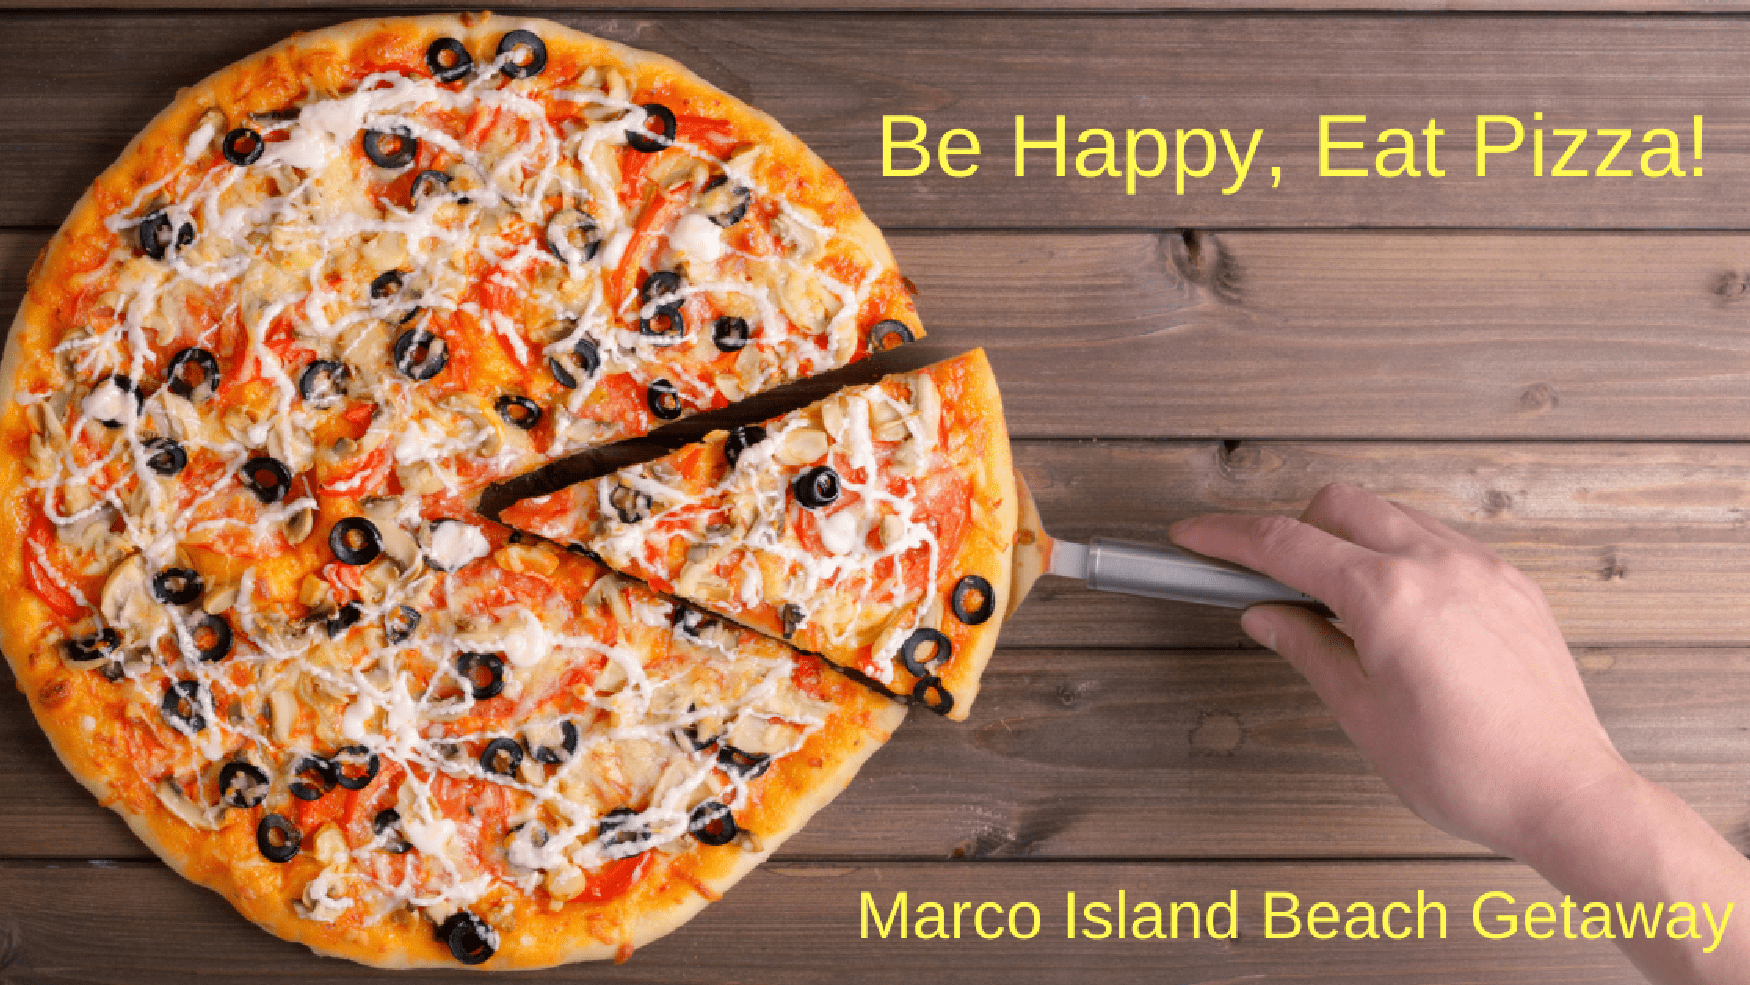 Be Happy, Eat pizza!